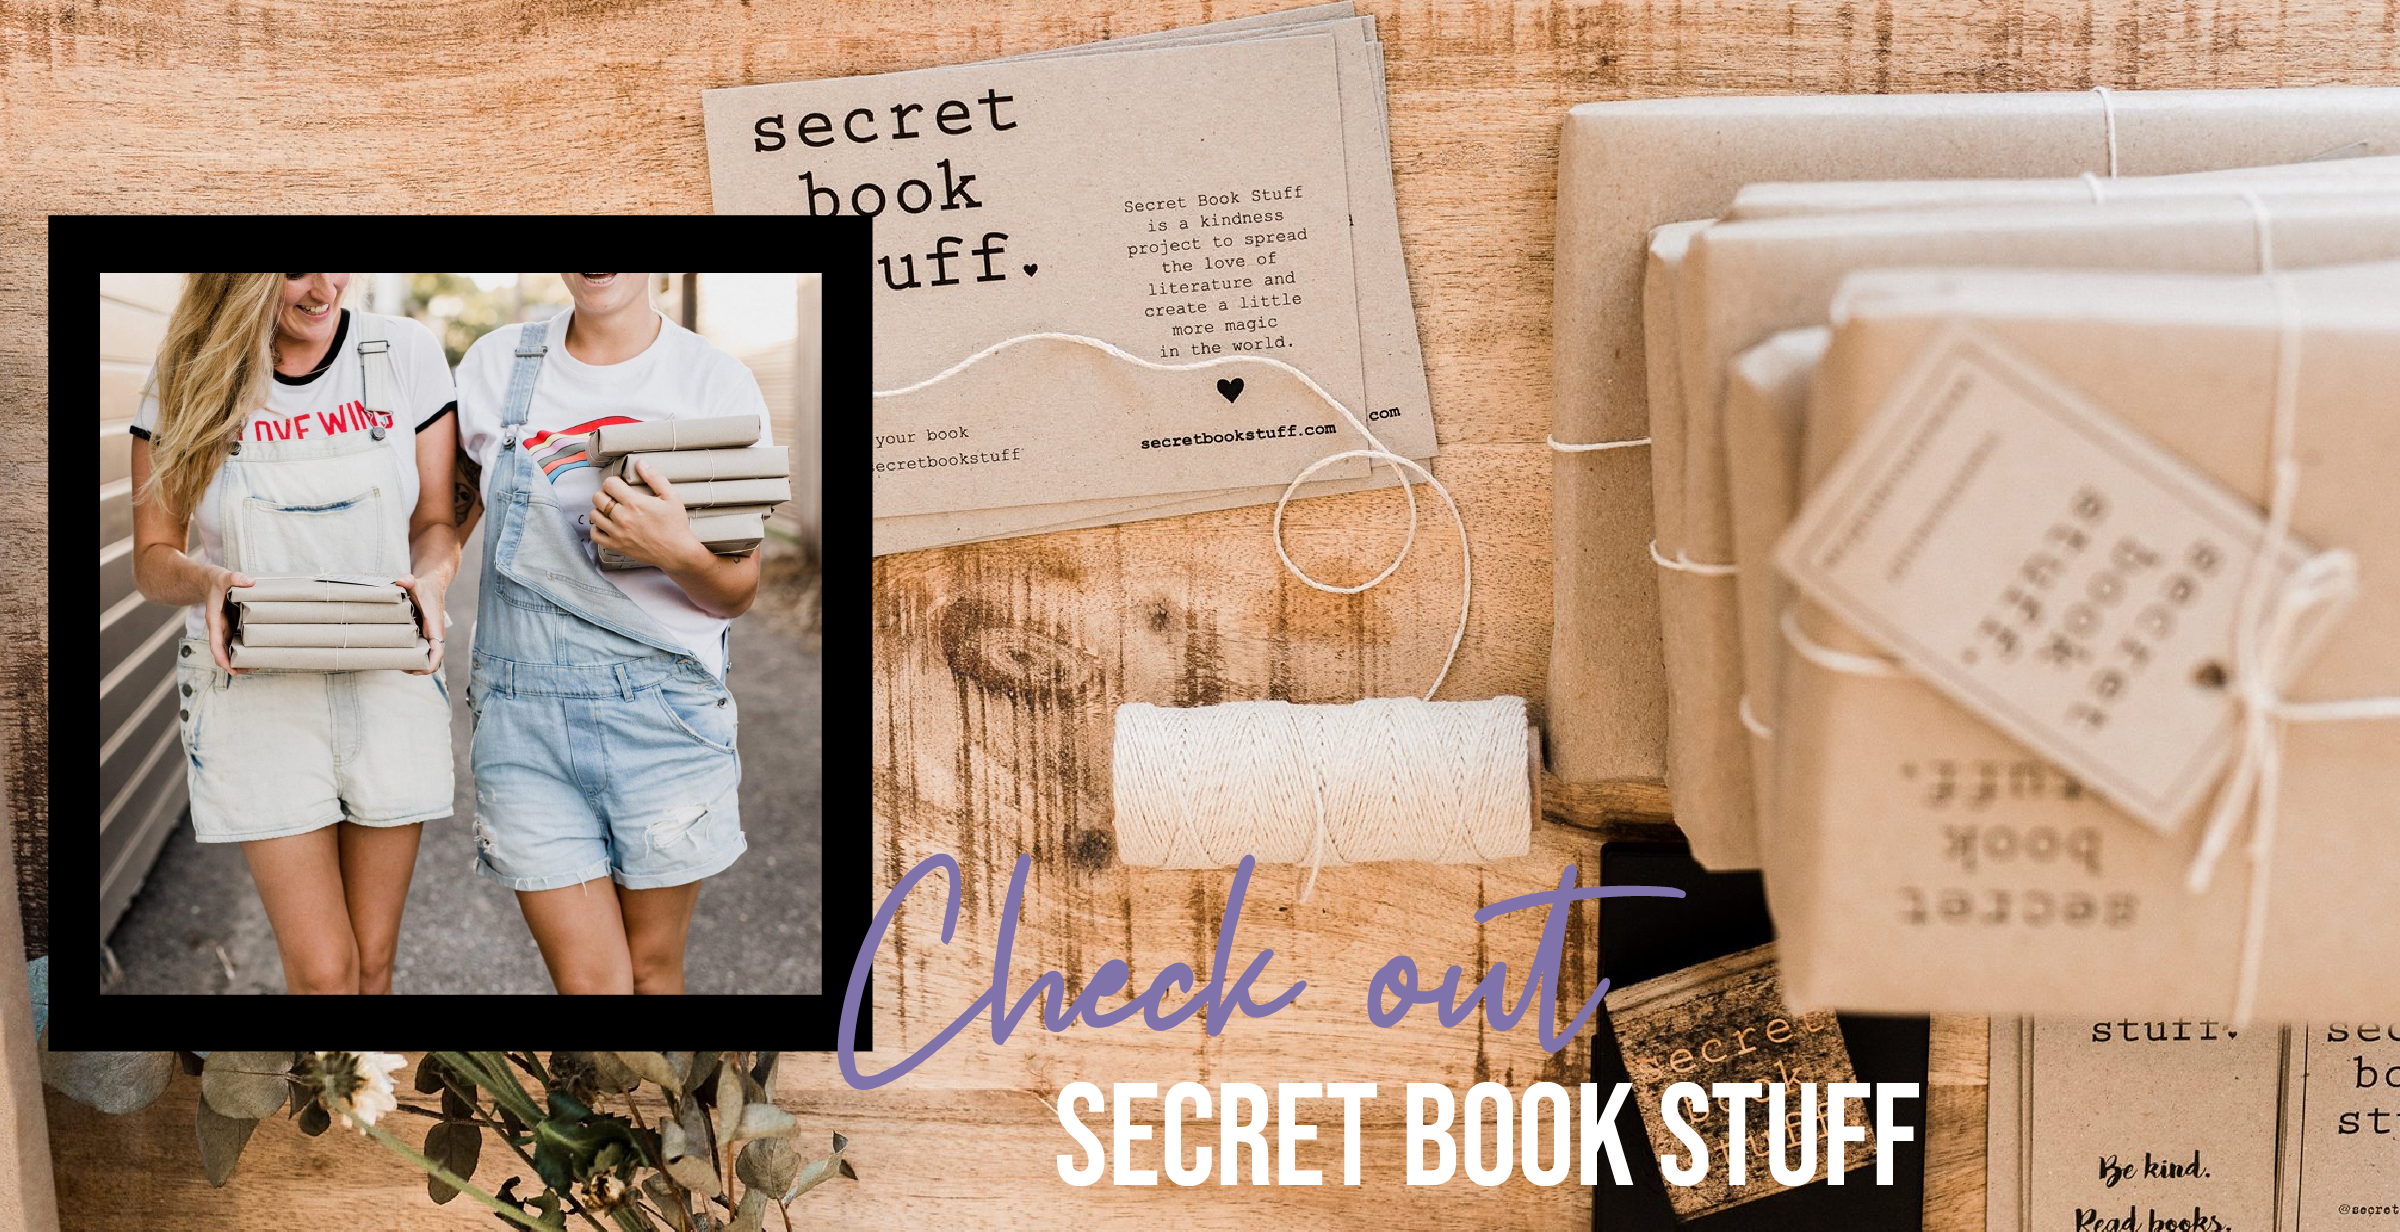 Check out SECRET BOOK STUFF